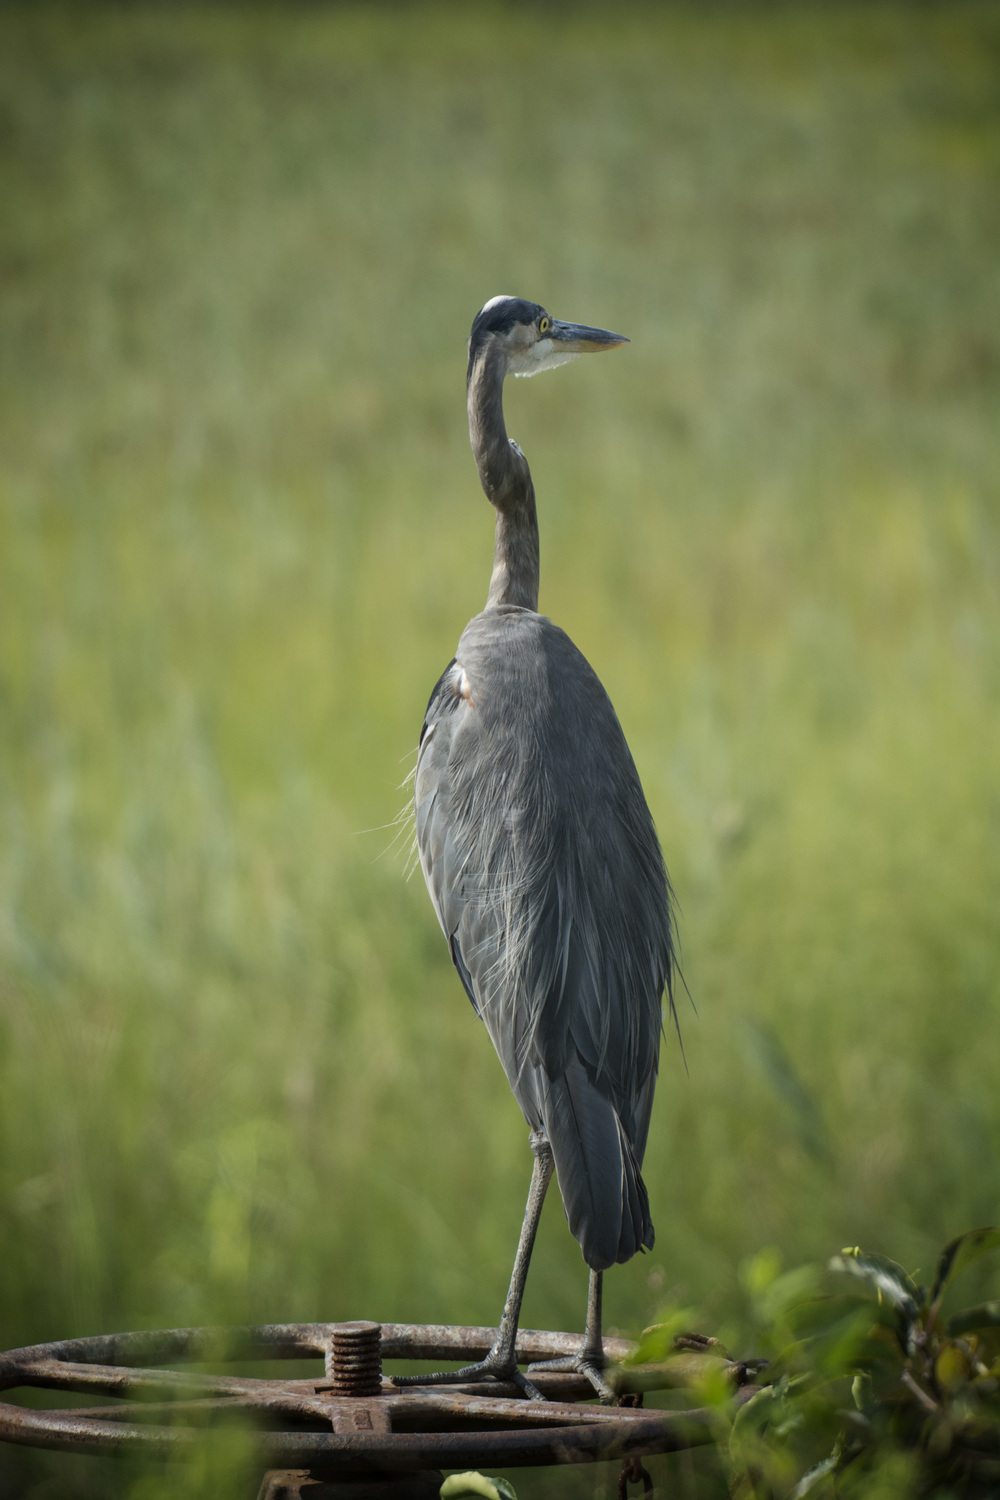 Great Blue Heron on sluice valve at Bombay Hook NWR